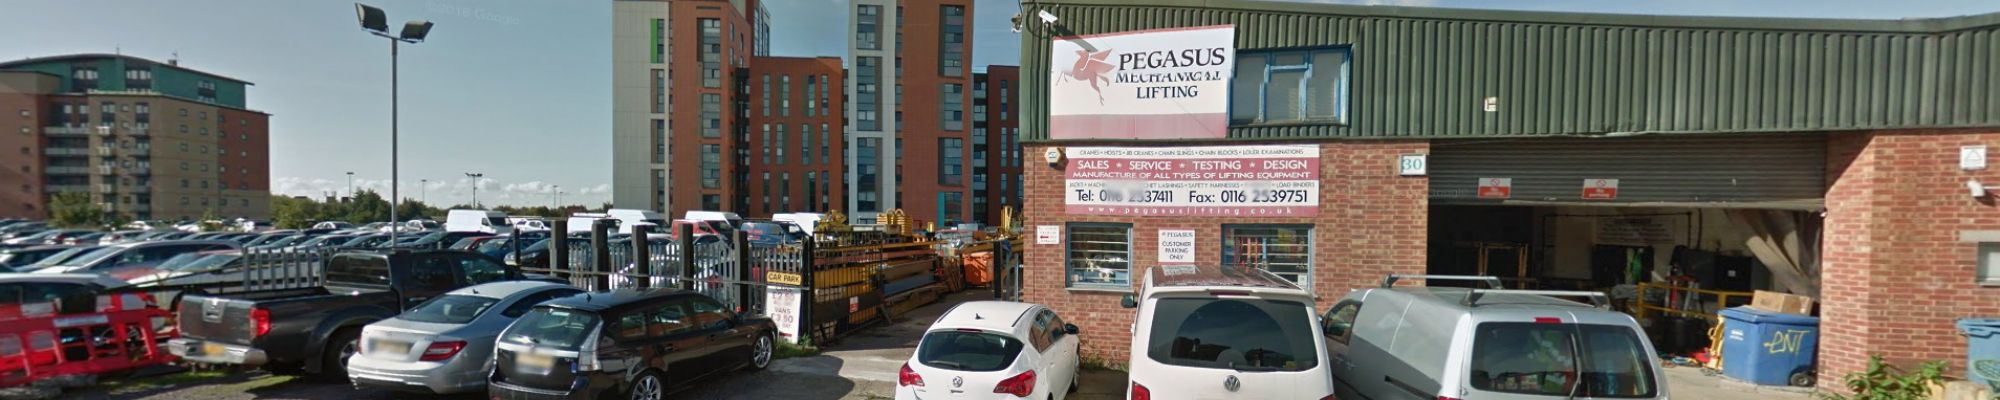 Contact Pegasus Mechanical Lifting